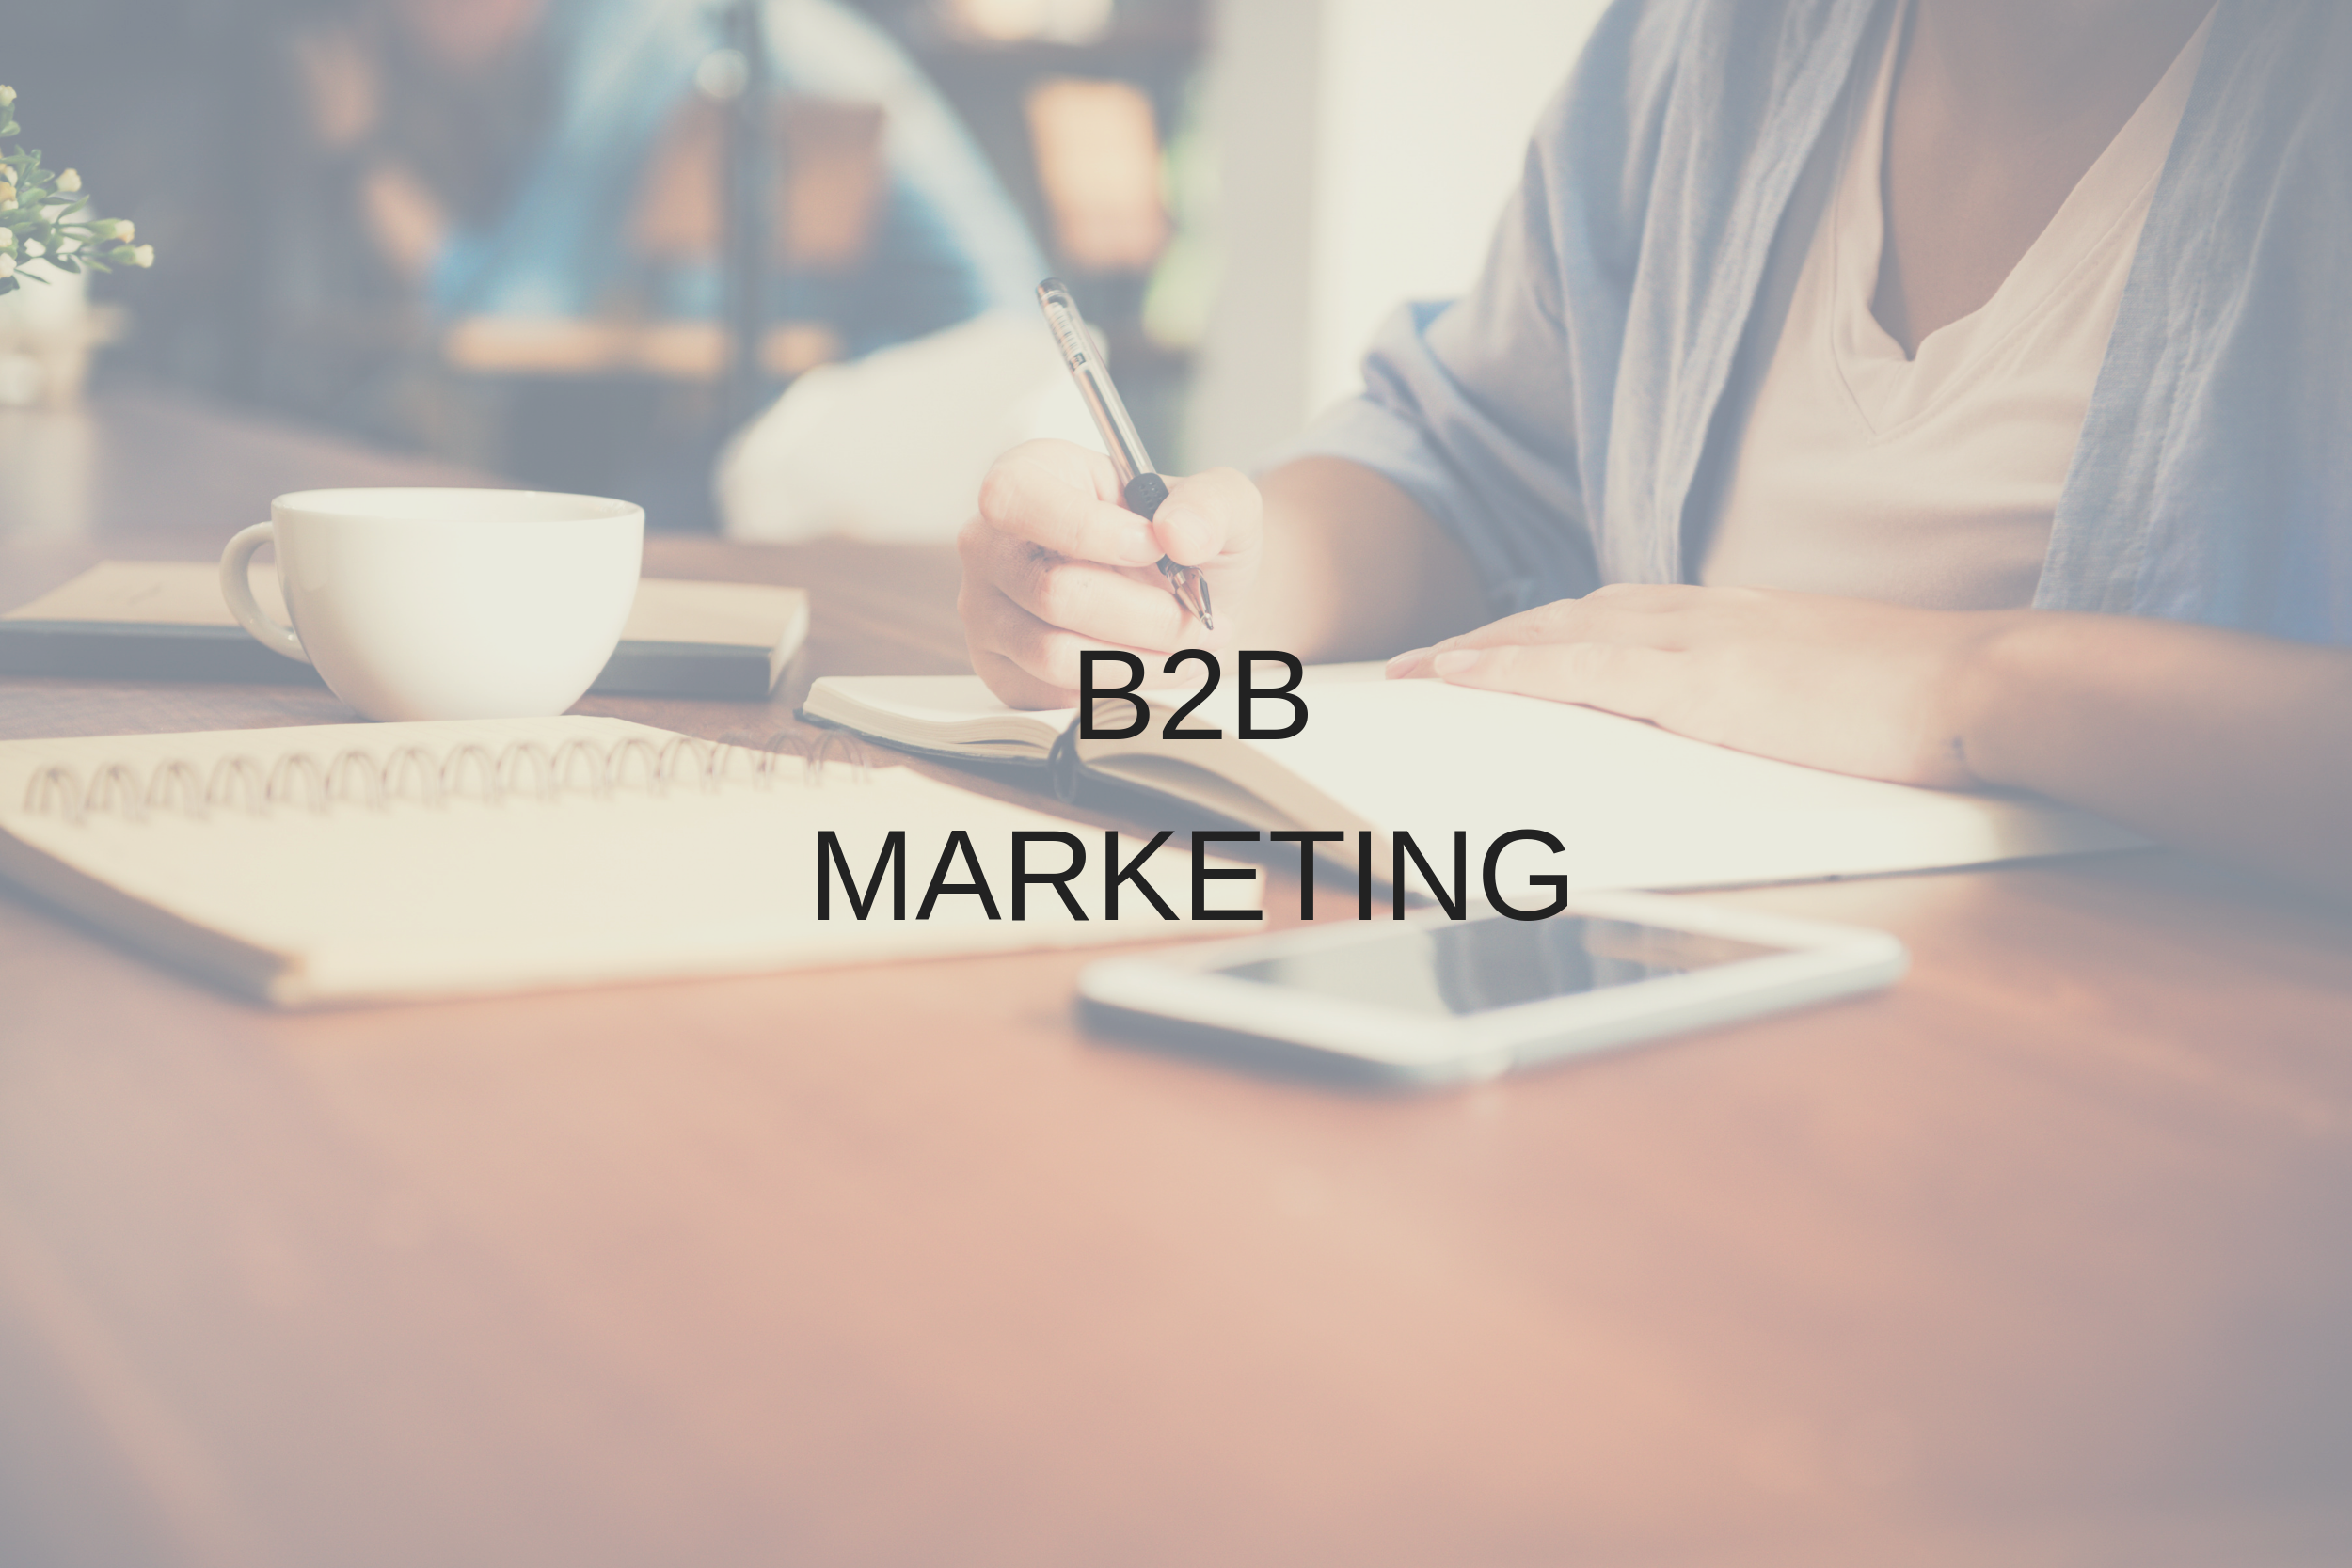 B2B marketing pic.png